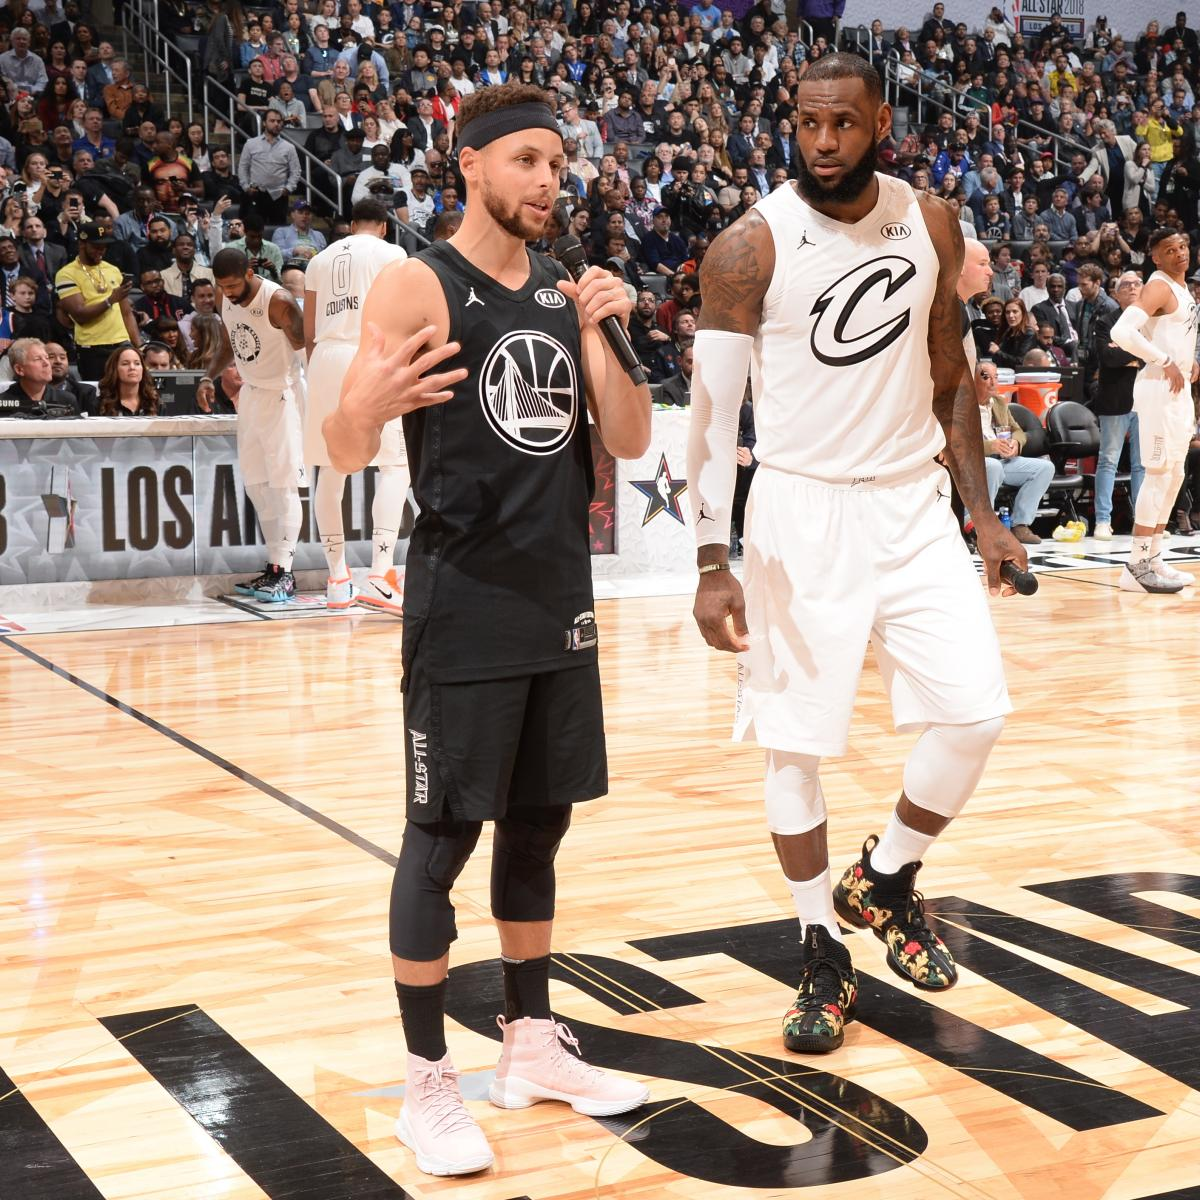 Nba Celebrity All Star Game 2019 Rosters Start Time Tv: NBA, Players Reportedly Agree To TV Broadcast Of All-Star